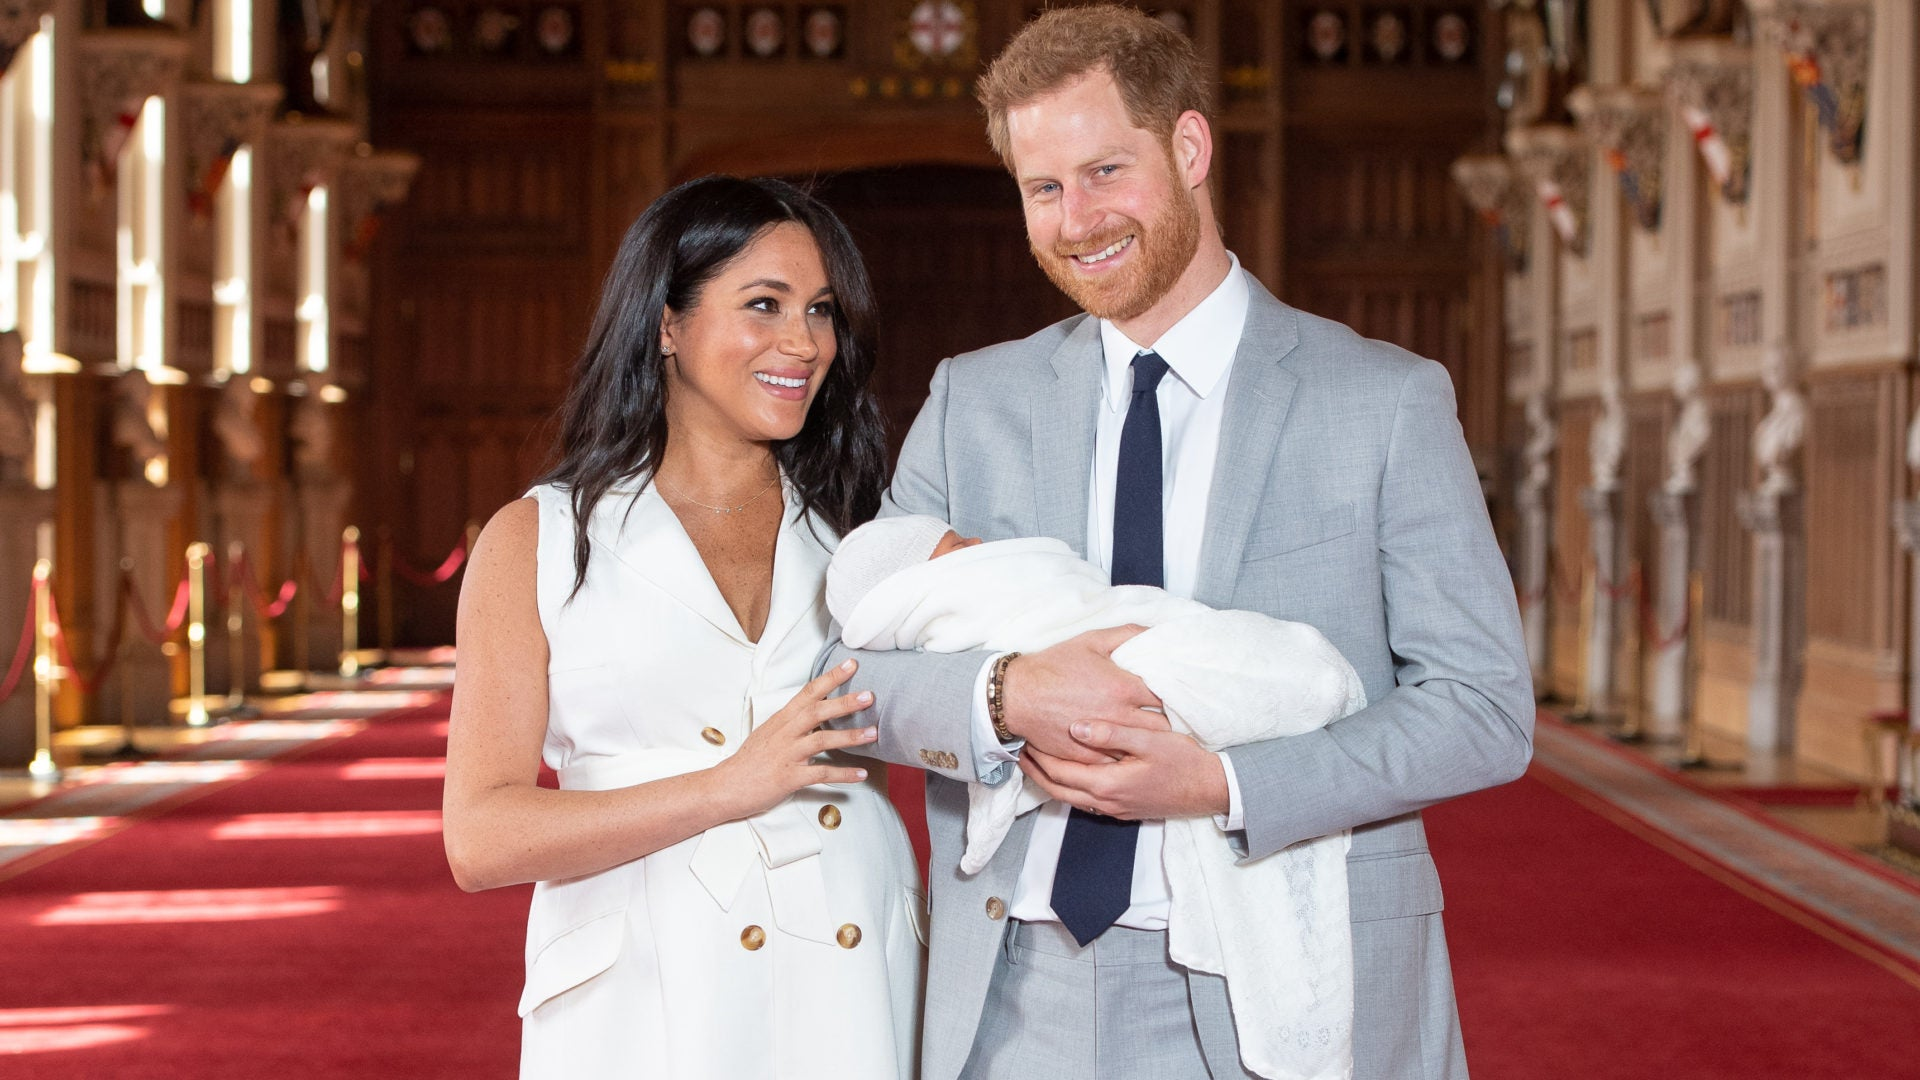 He's Here! Prince Harry and Meghan Markle Debut Their Baby Boy